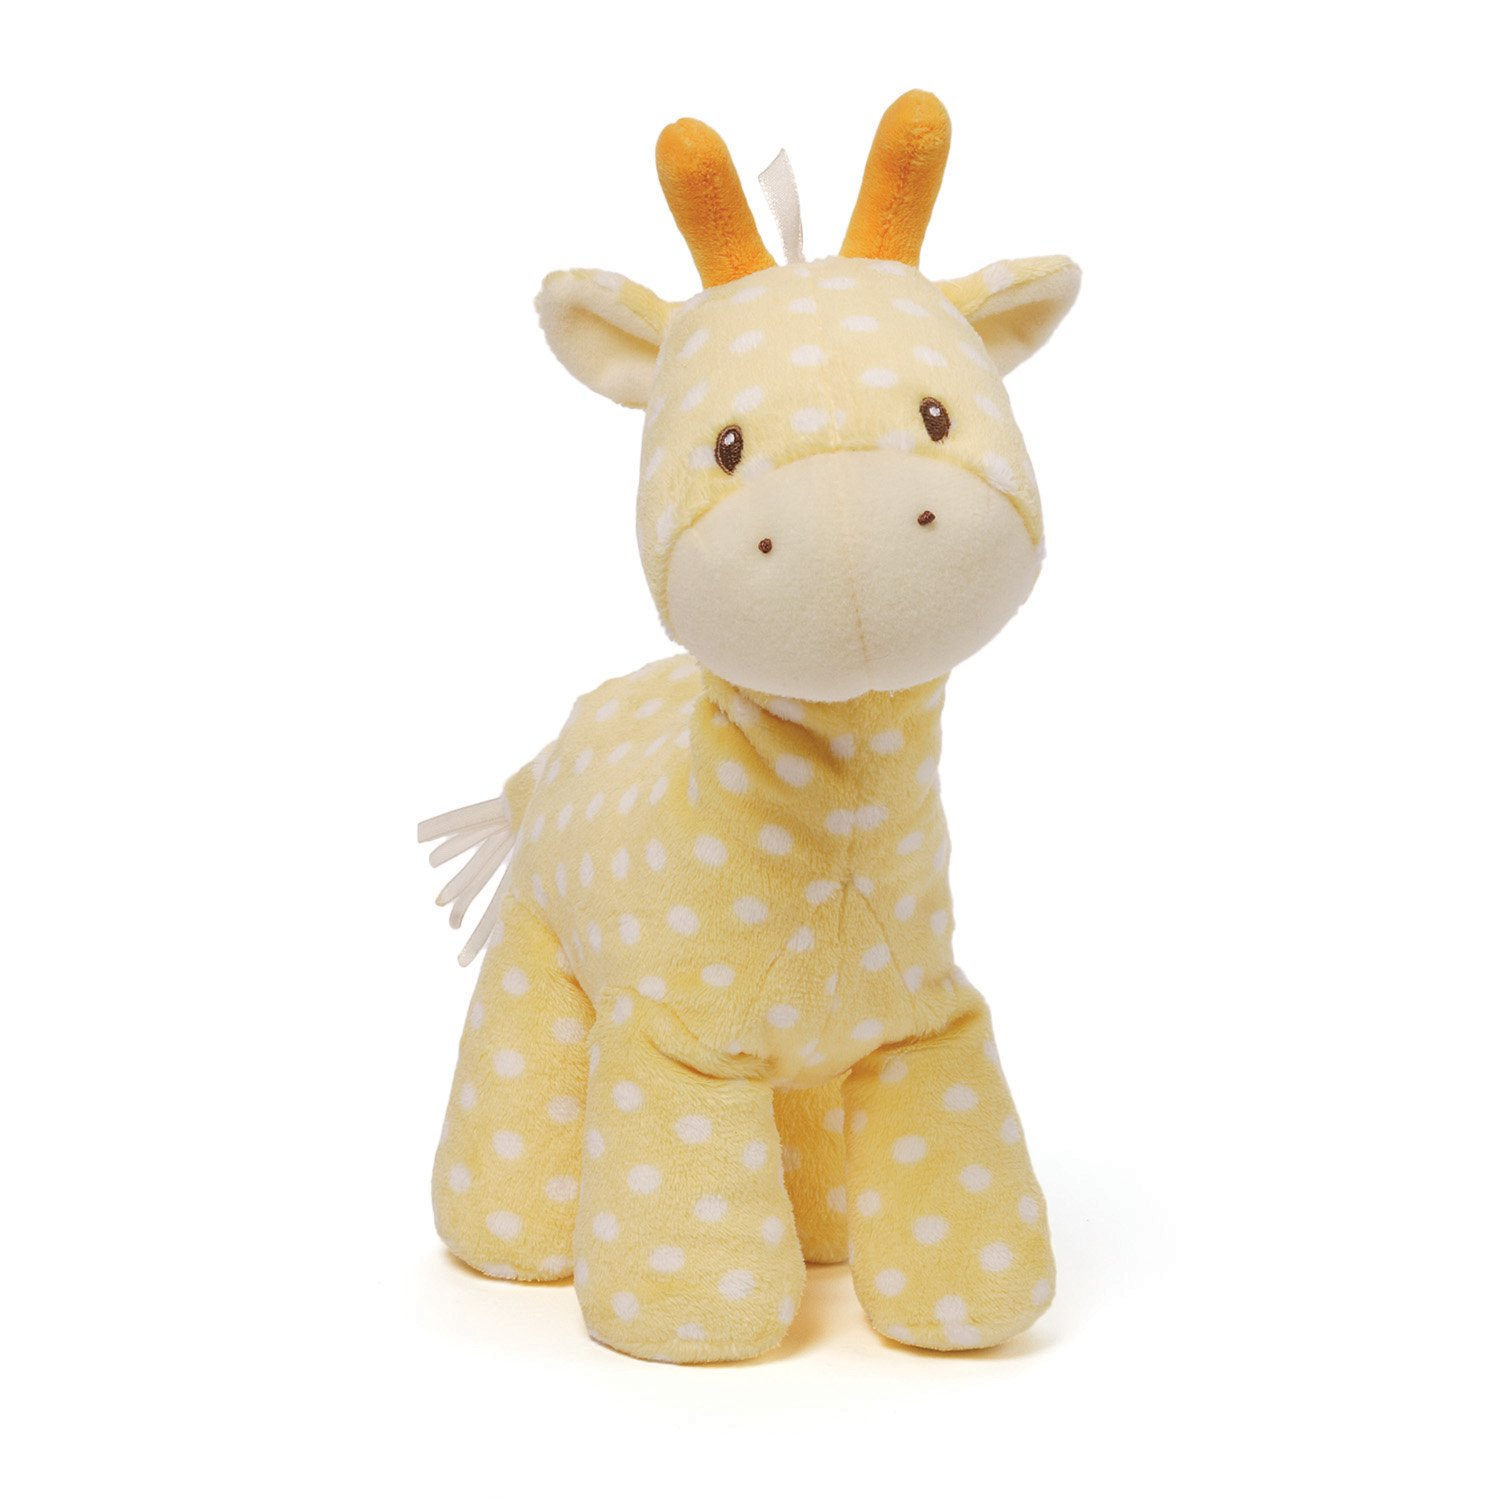 Gund Baby Lolly and Friends Stuffed Animal, Giraffe yellow giraffe plush features a fun polka dot pattern as well as satin accents for a touch of luxury appeal kids toy